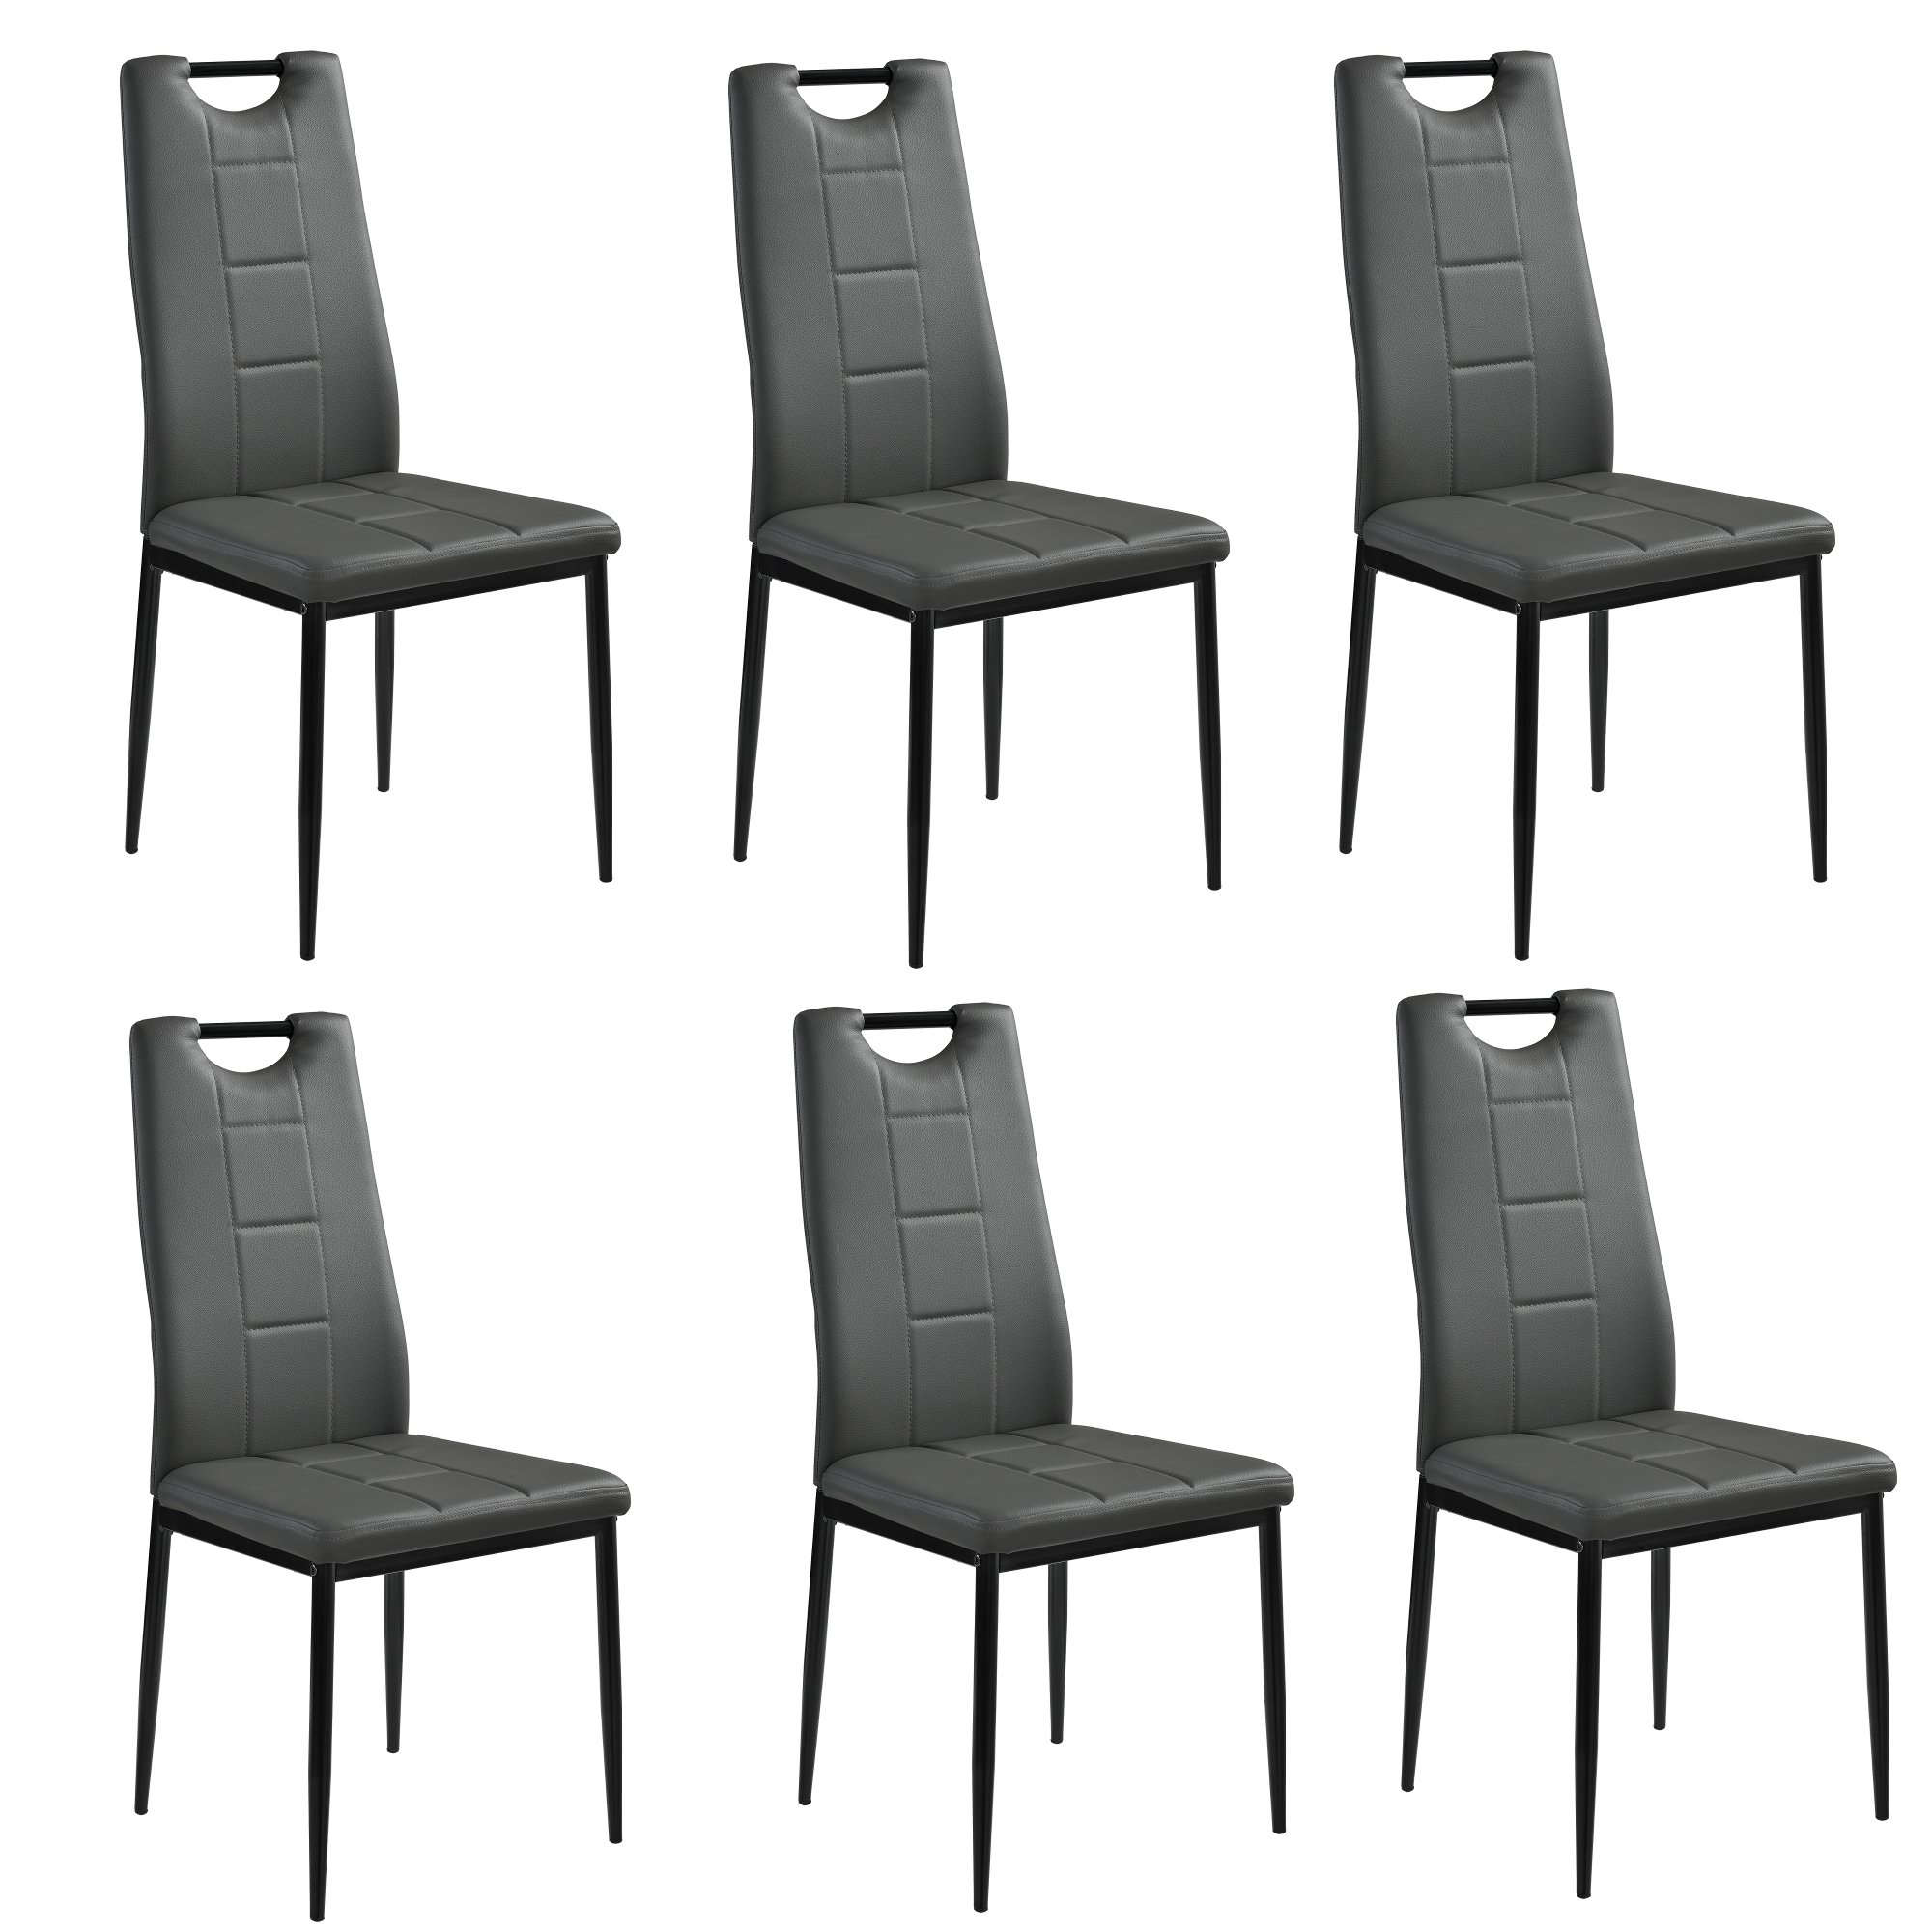 High Dining Room Chairs: [en.casa] 6 X Chairs Grey High Back Dining Room Faux